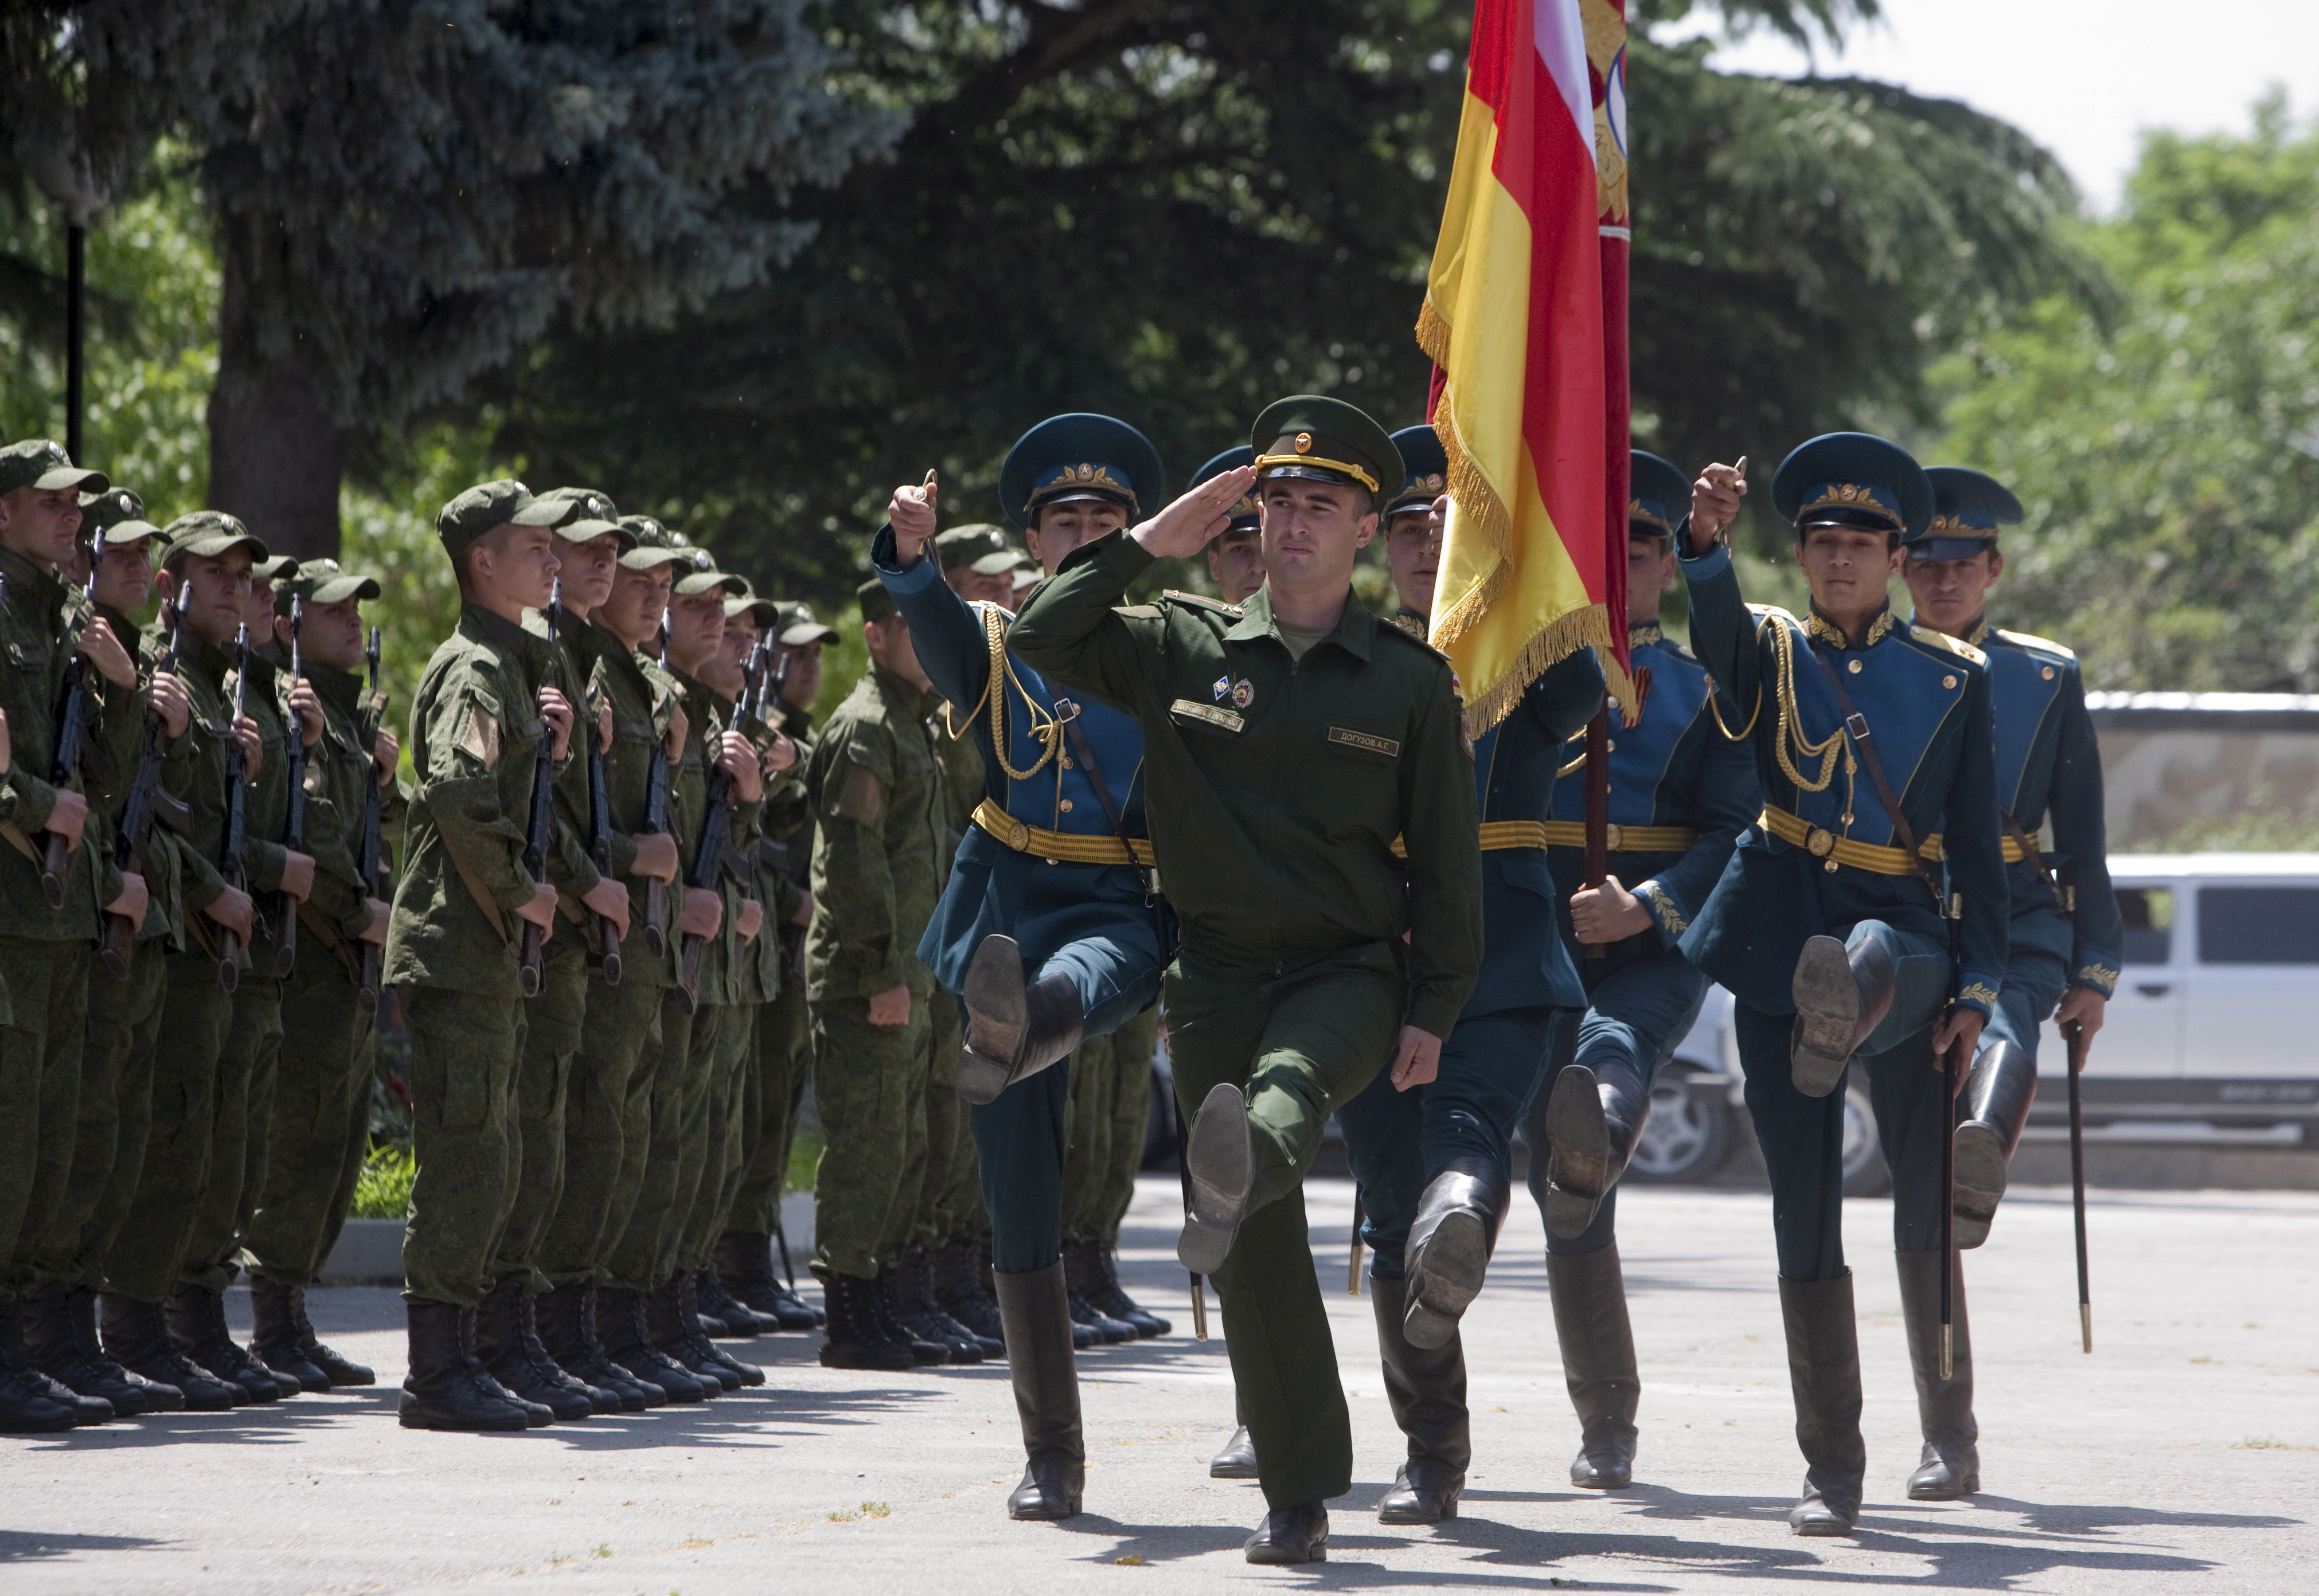 FILE - Servicemen of the military forces of South Ossetia march during an oath of allegiance ceremony in Tskhinvali, the capital of the breakaway region of South Ossetia, Georgia, July 5, 2015.